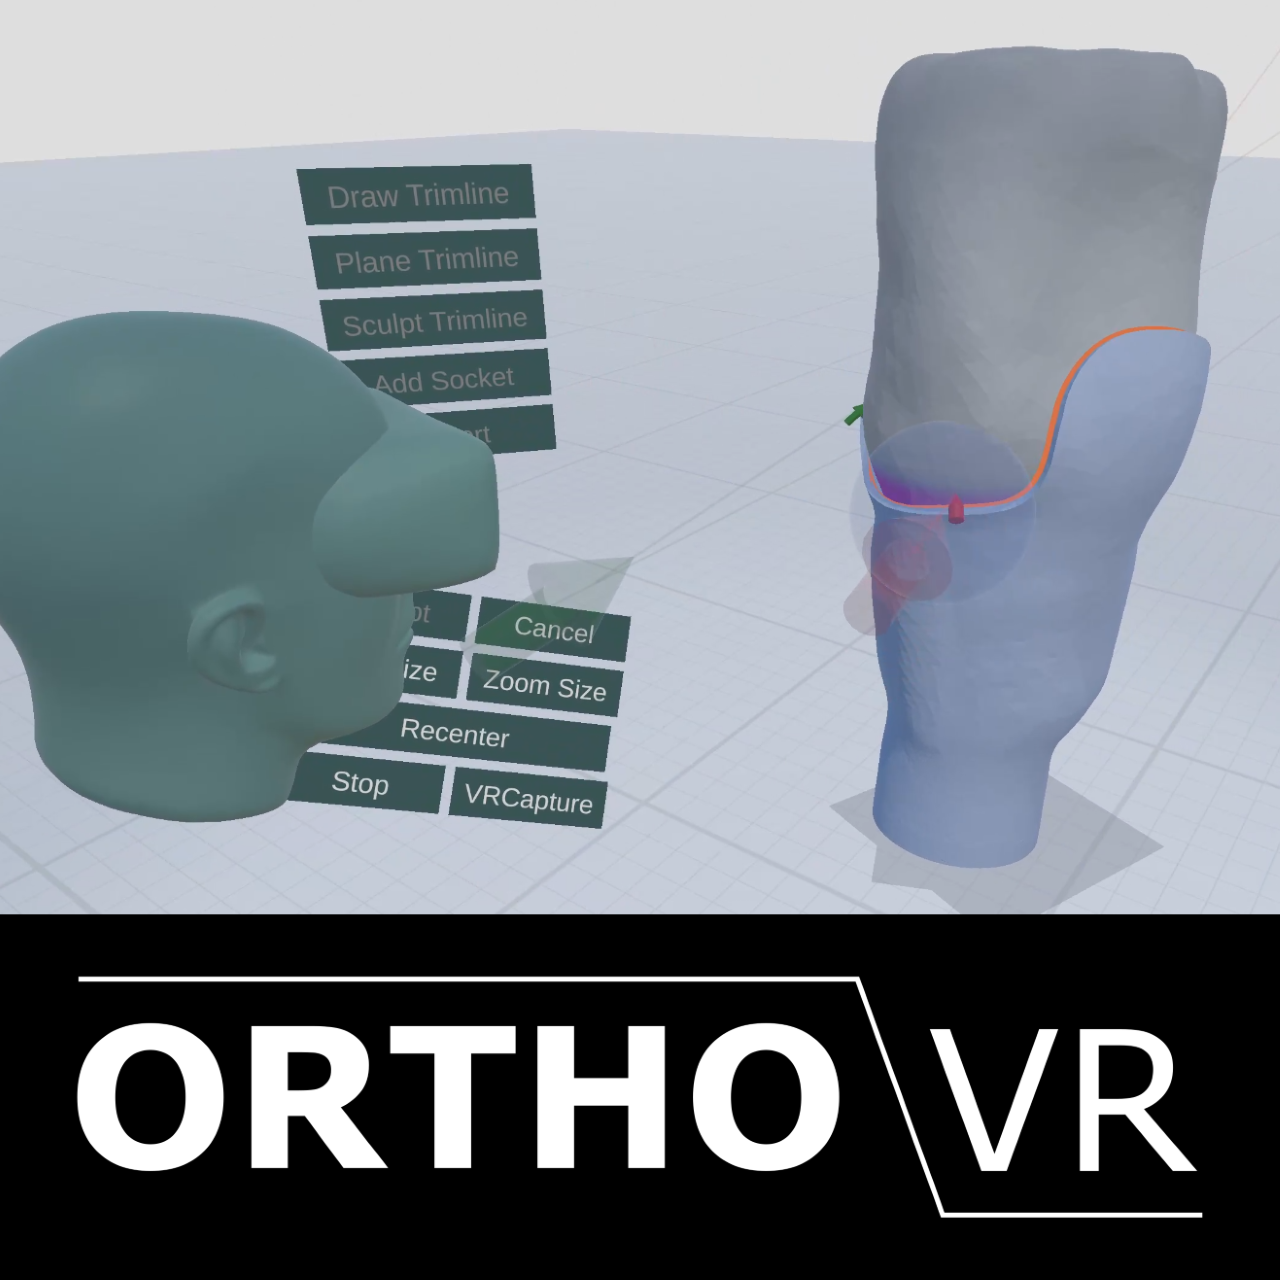 orthovr_square.png